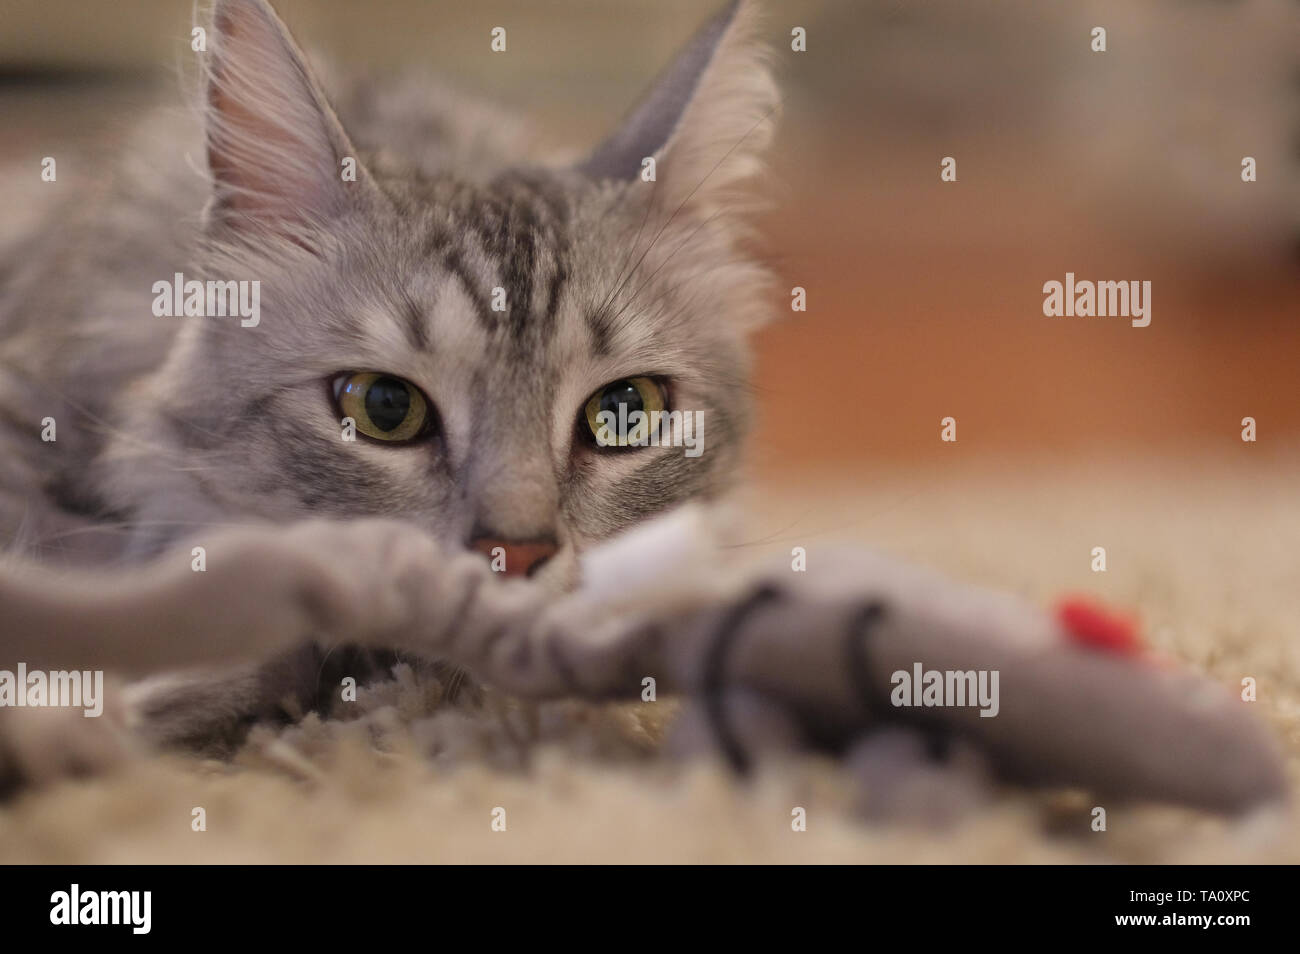 turkish angora cat playing with toy and looking curiously at camera - Stock Image